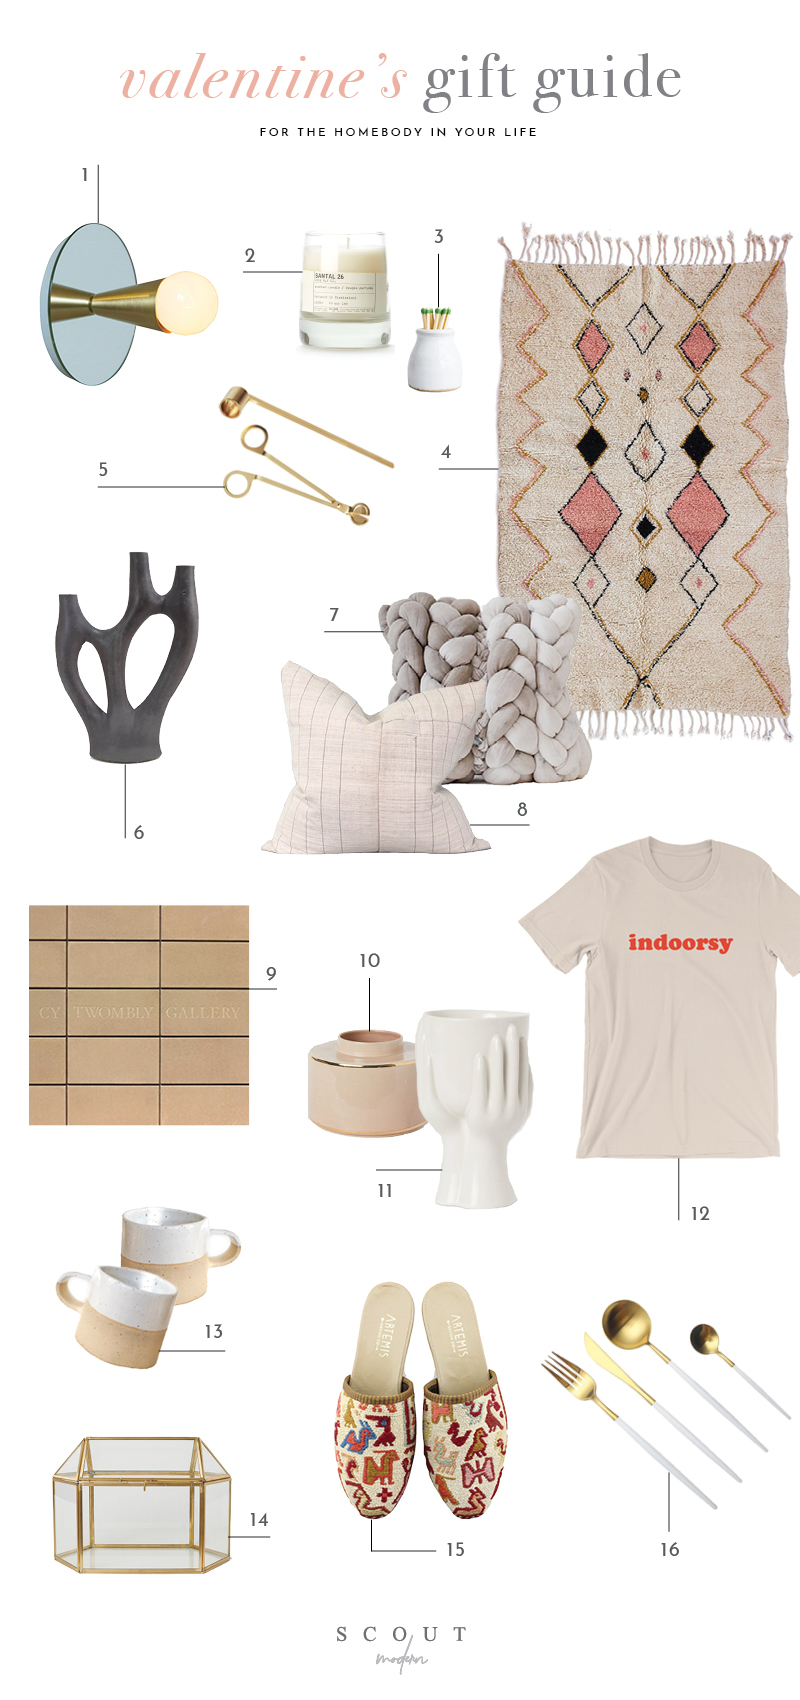 1.  Mirrored Sconce  | 2.  Candle  | 3.  Milk Bottle Match Striker  | 4.  Shag Rug  | 5.  Wick Trimmer and Candle Snuffer  | 6.  Concrete Candelabra  | 7.  Hand Died Plaited Pillow  | 8.  Hemp Striped Pillow  | 9.  Cy Twombly Gallery Book  | 10.  Wide Ceramic Vase  | 11.  Stoneware Vase  | 12.  Indoorsy Tee  | 13.  Ceramic Pottery Mug  | 14.  Mini Greenhouse  | 15.  Kilim Slides  | 16.  Flatware